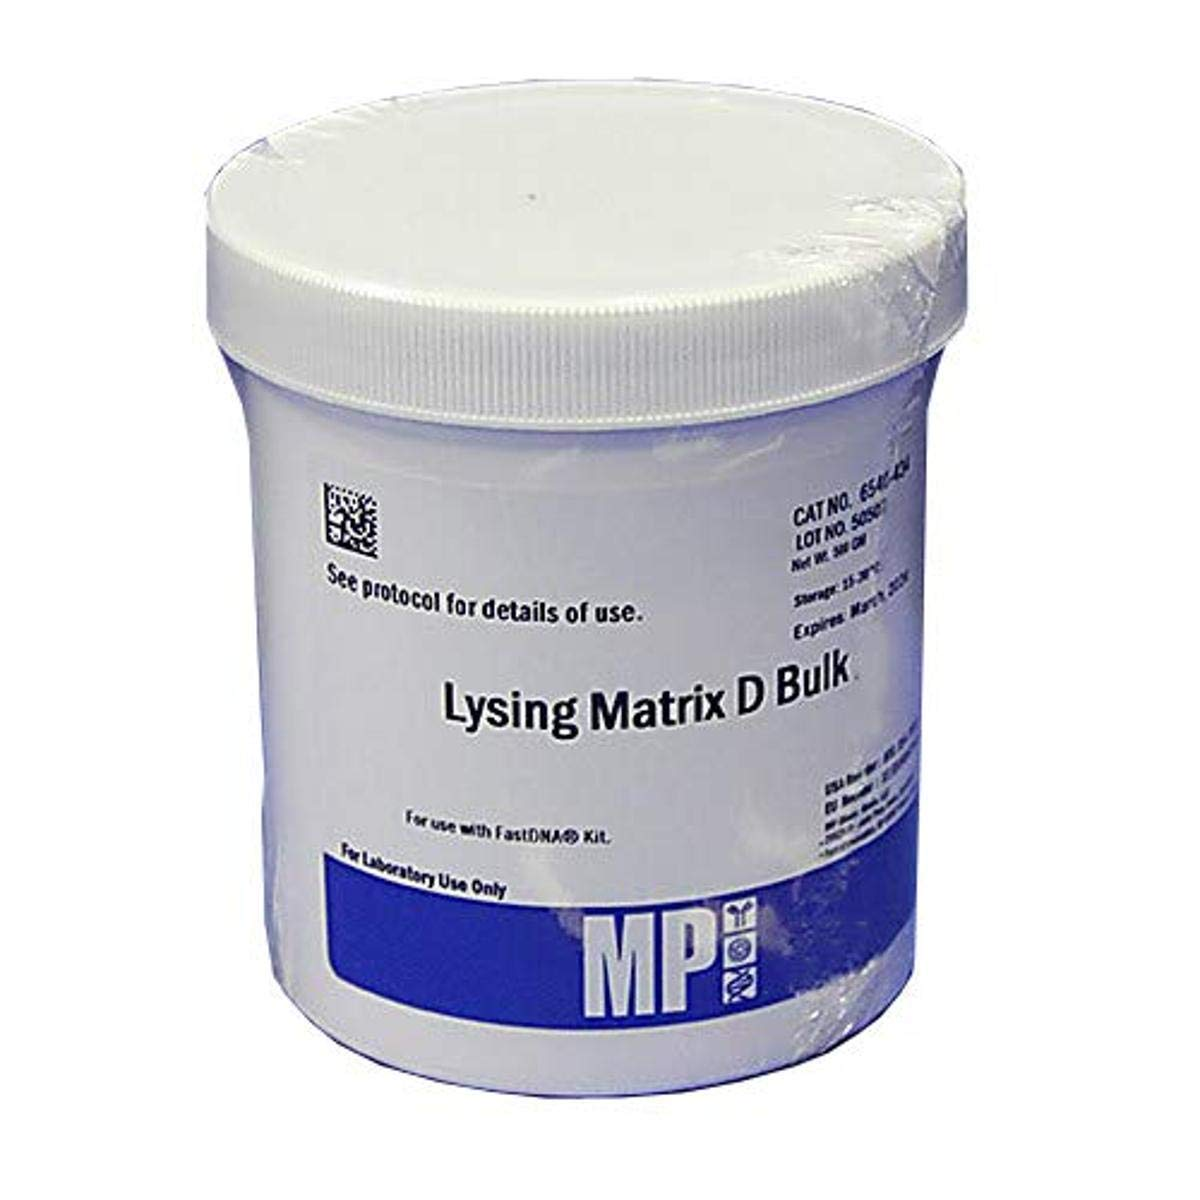 MP Biomedicals 116540434 Lysing Matrix 500g Reservation 2021new shipping free shipping Type Bulk D Weigh